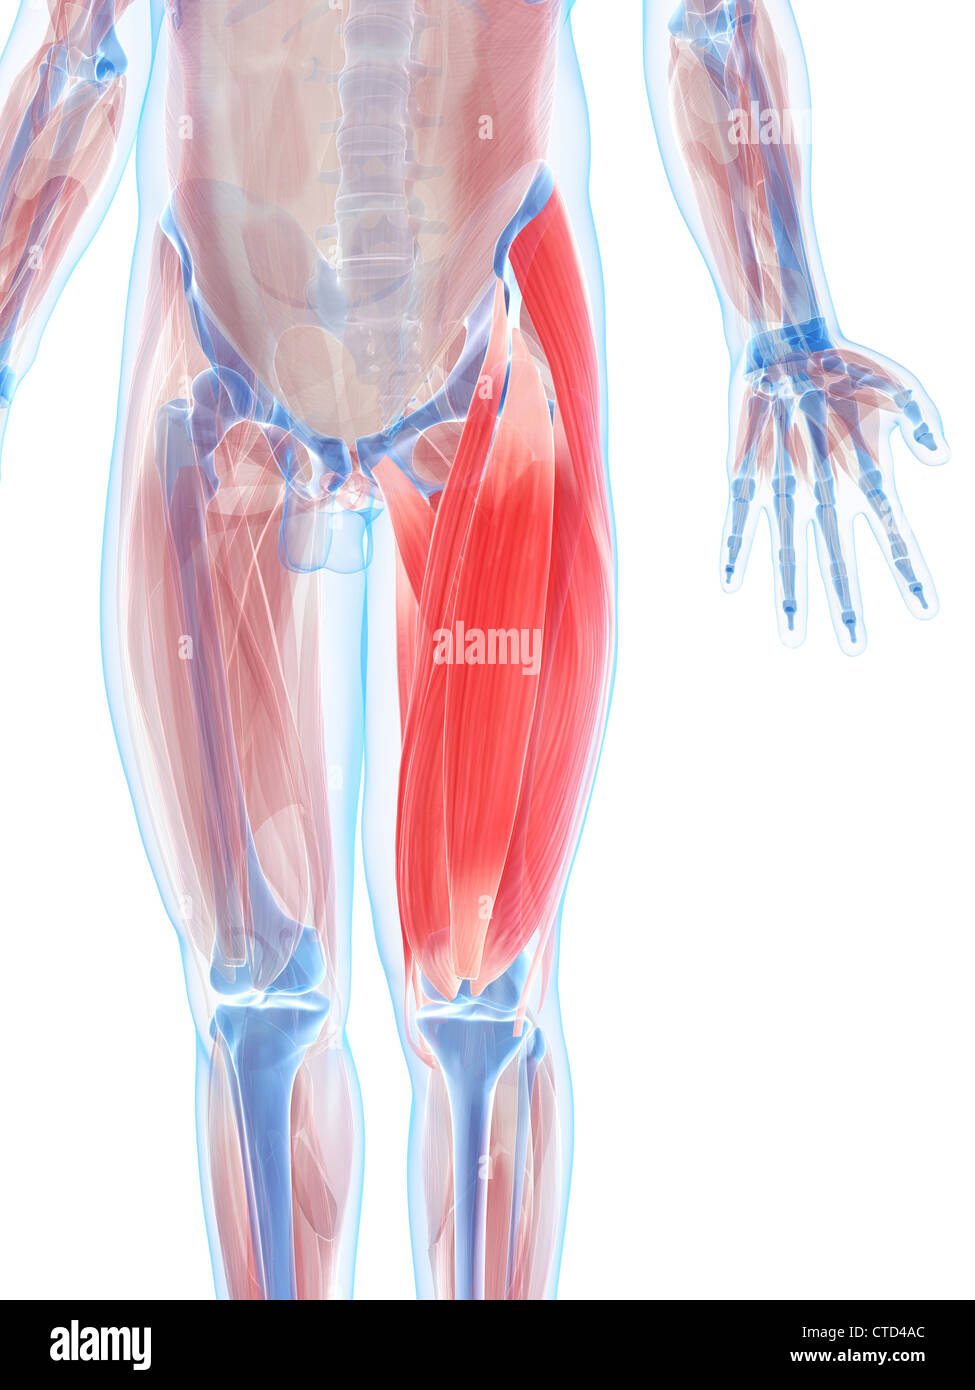 Thigh muscles  artwork - Stock Image